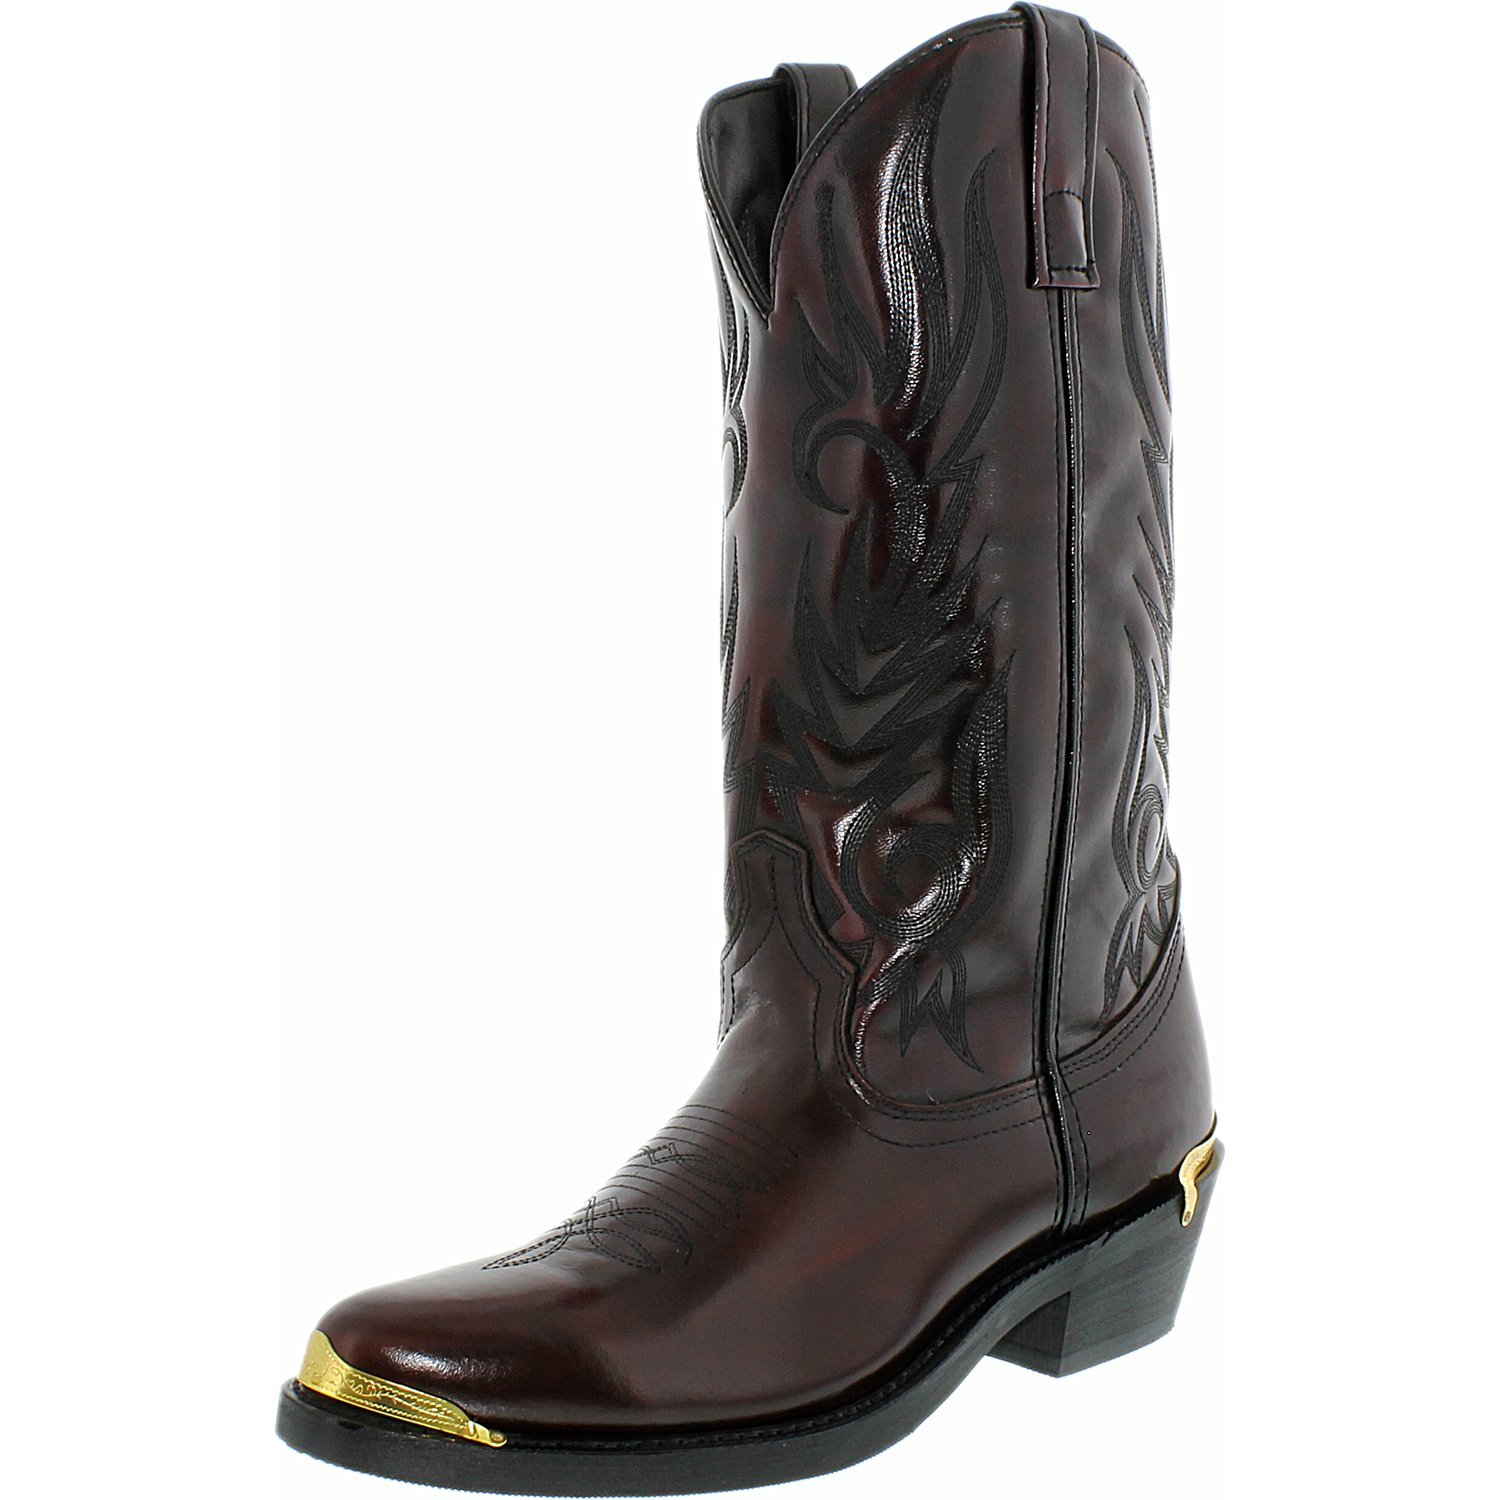 Laredo Men's Mccomb Leather Synthetic Black Cherry Mid-Calf Leather Boot 9D by Laredo